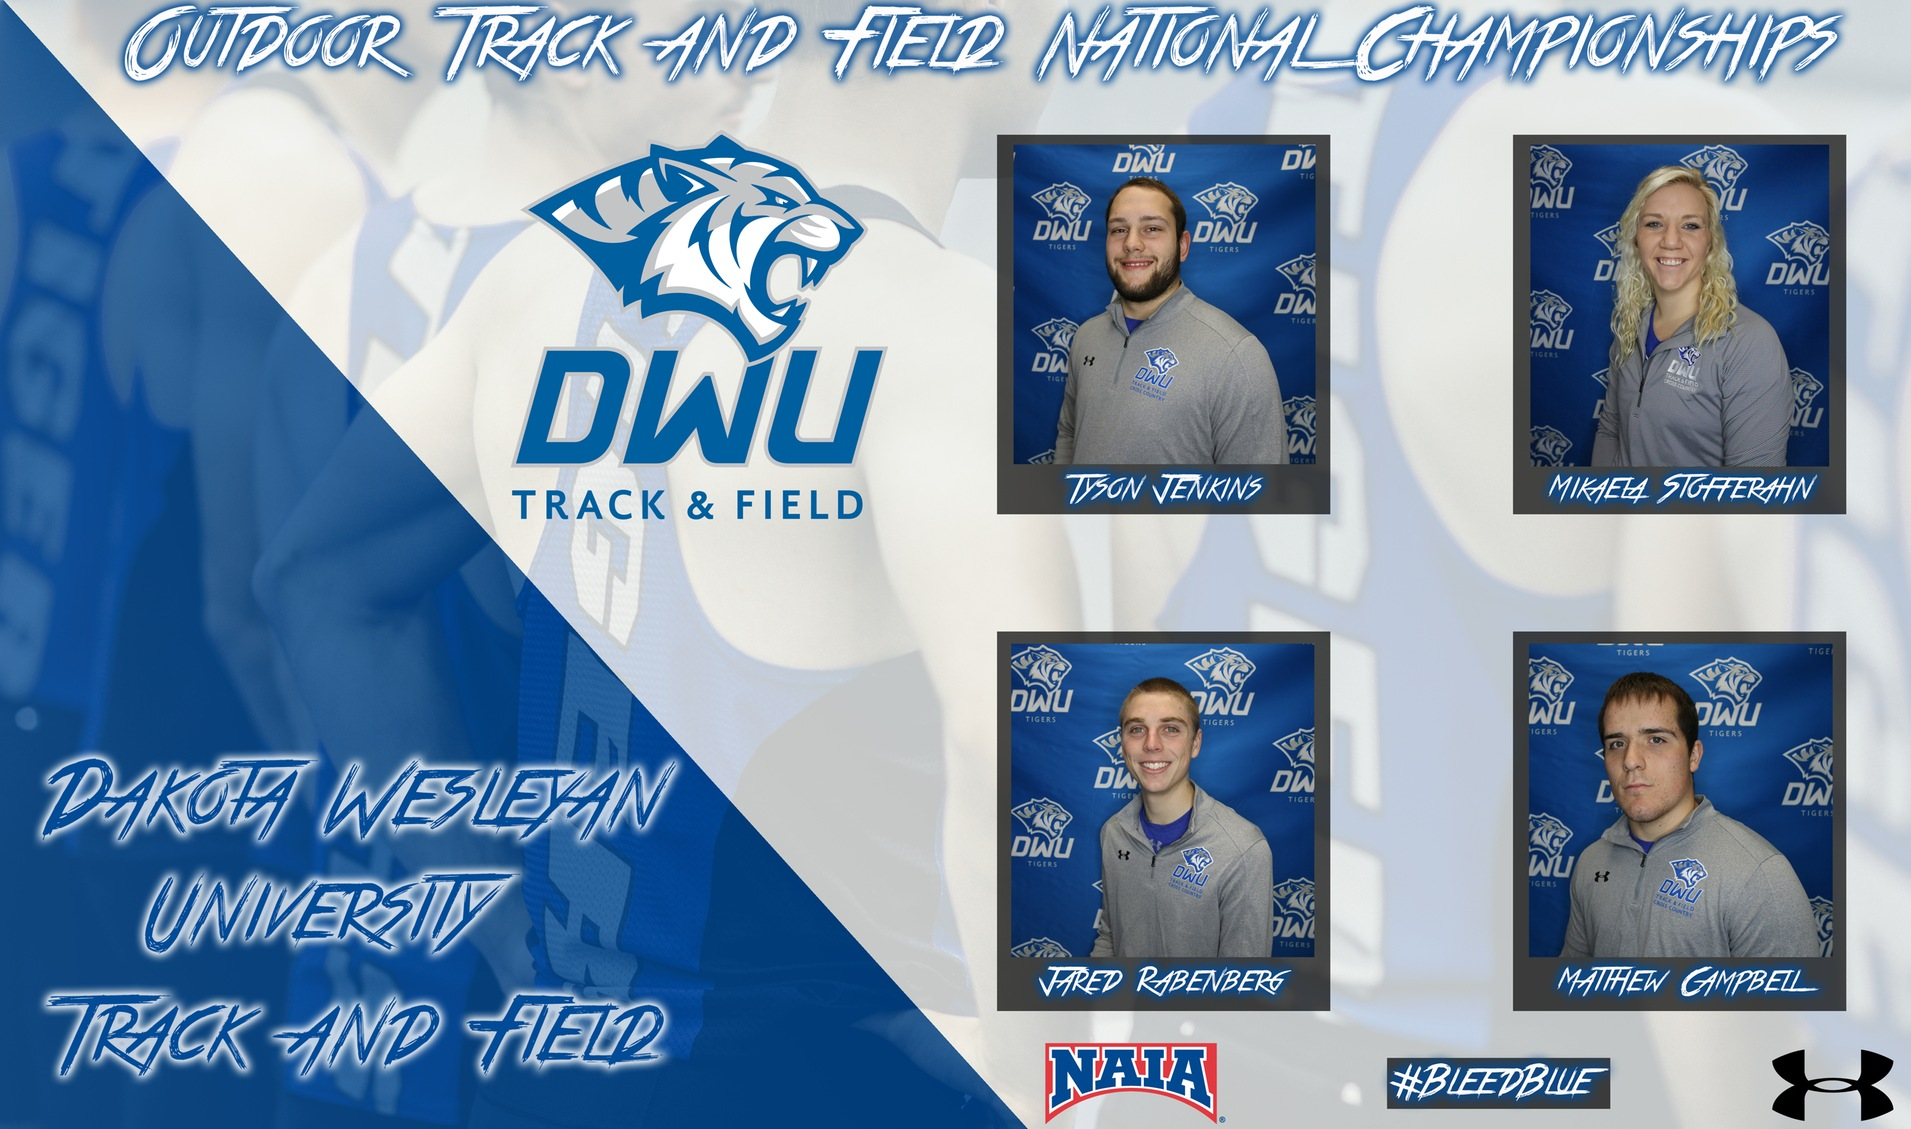 DWU track and field tallies three All-Americans at national championships